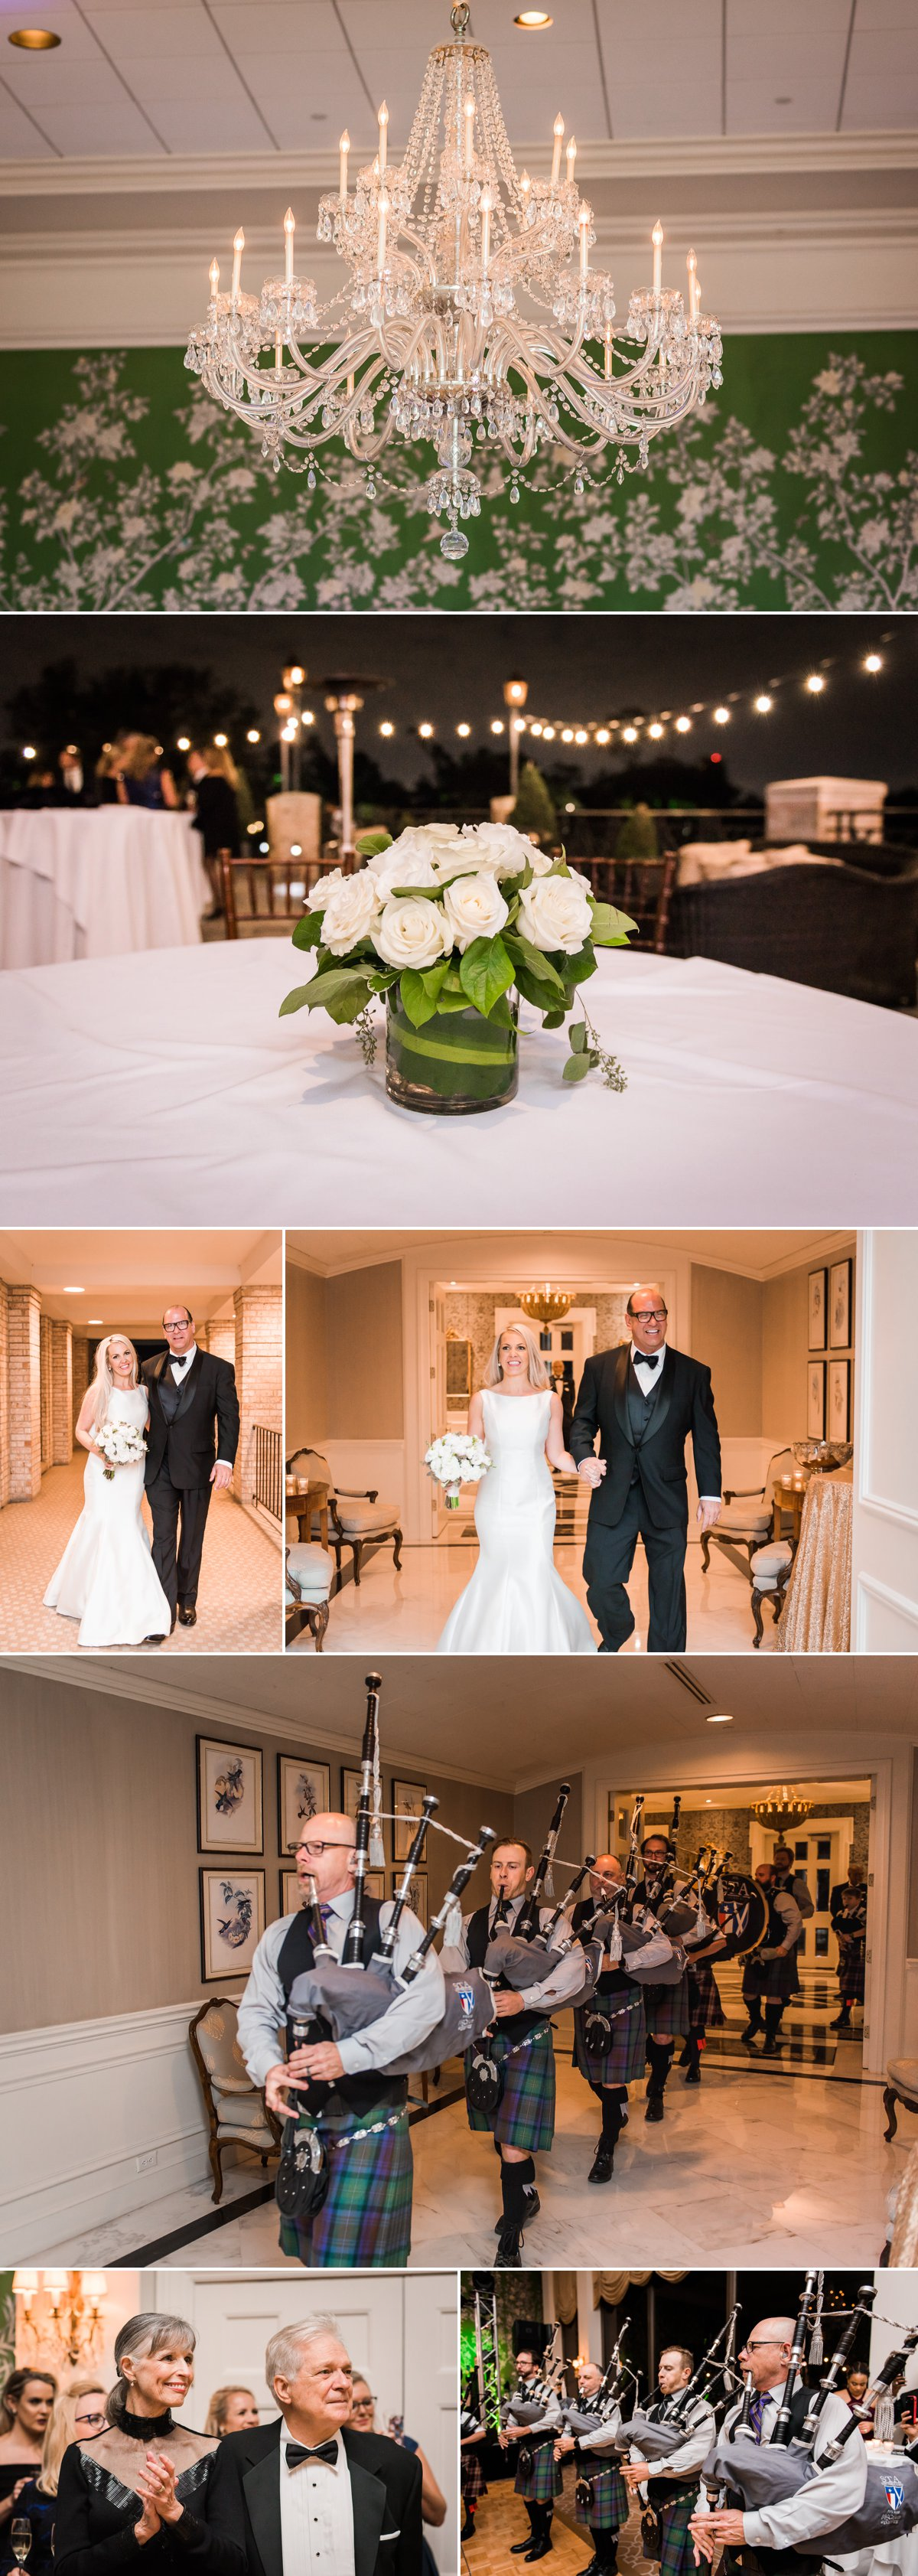 Kaitlyn-Stewart River Oaks Wedding photo by Nate Messarra